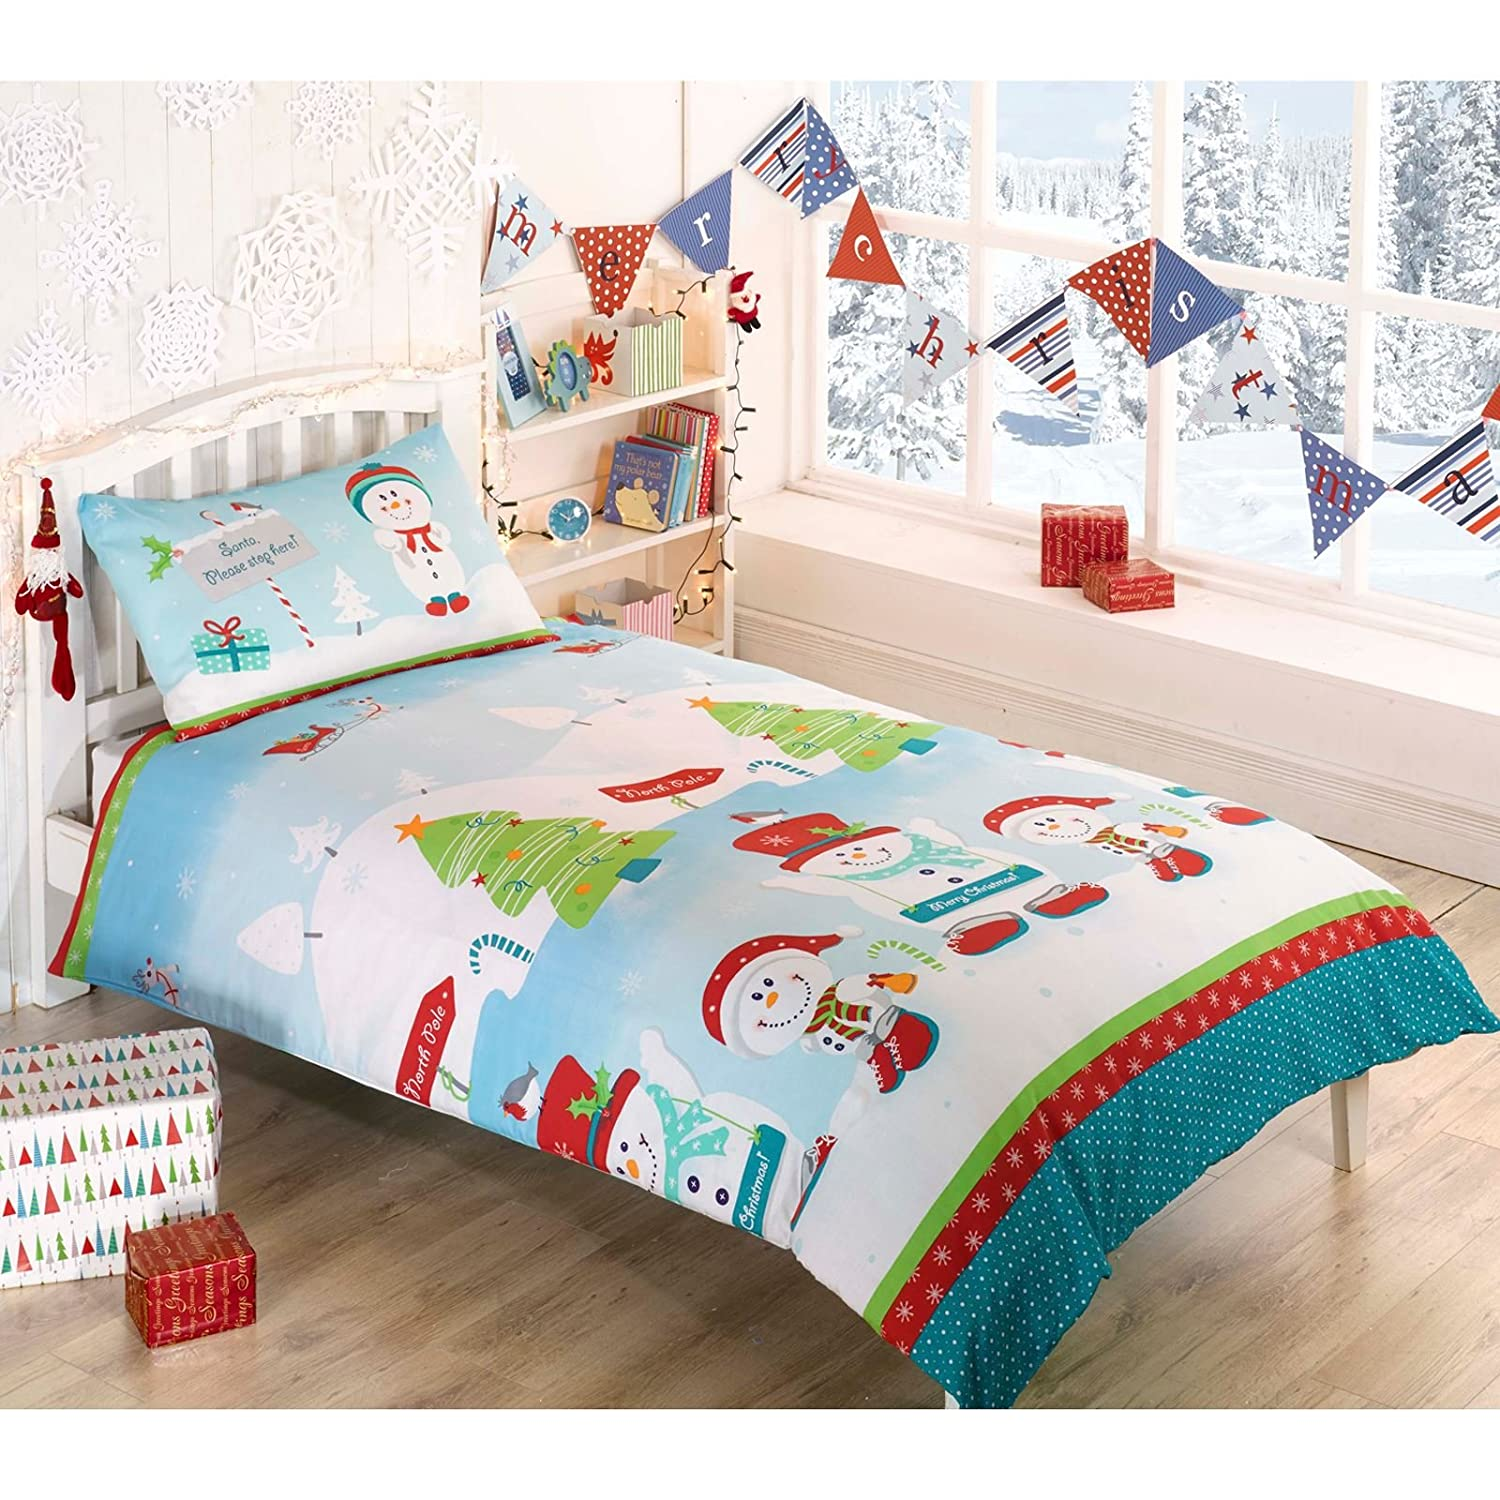 Snowman Christmas Single Duvet Cover and Pillowcase Set